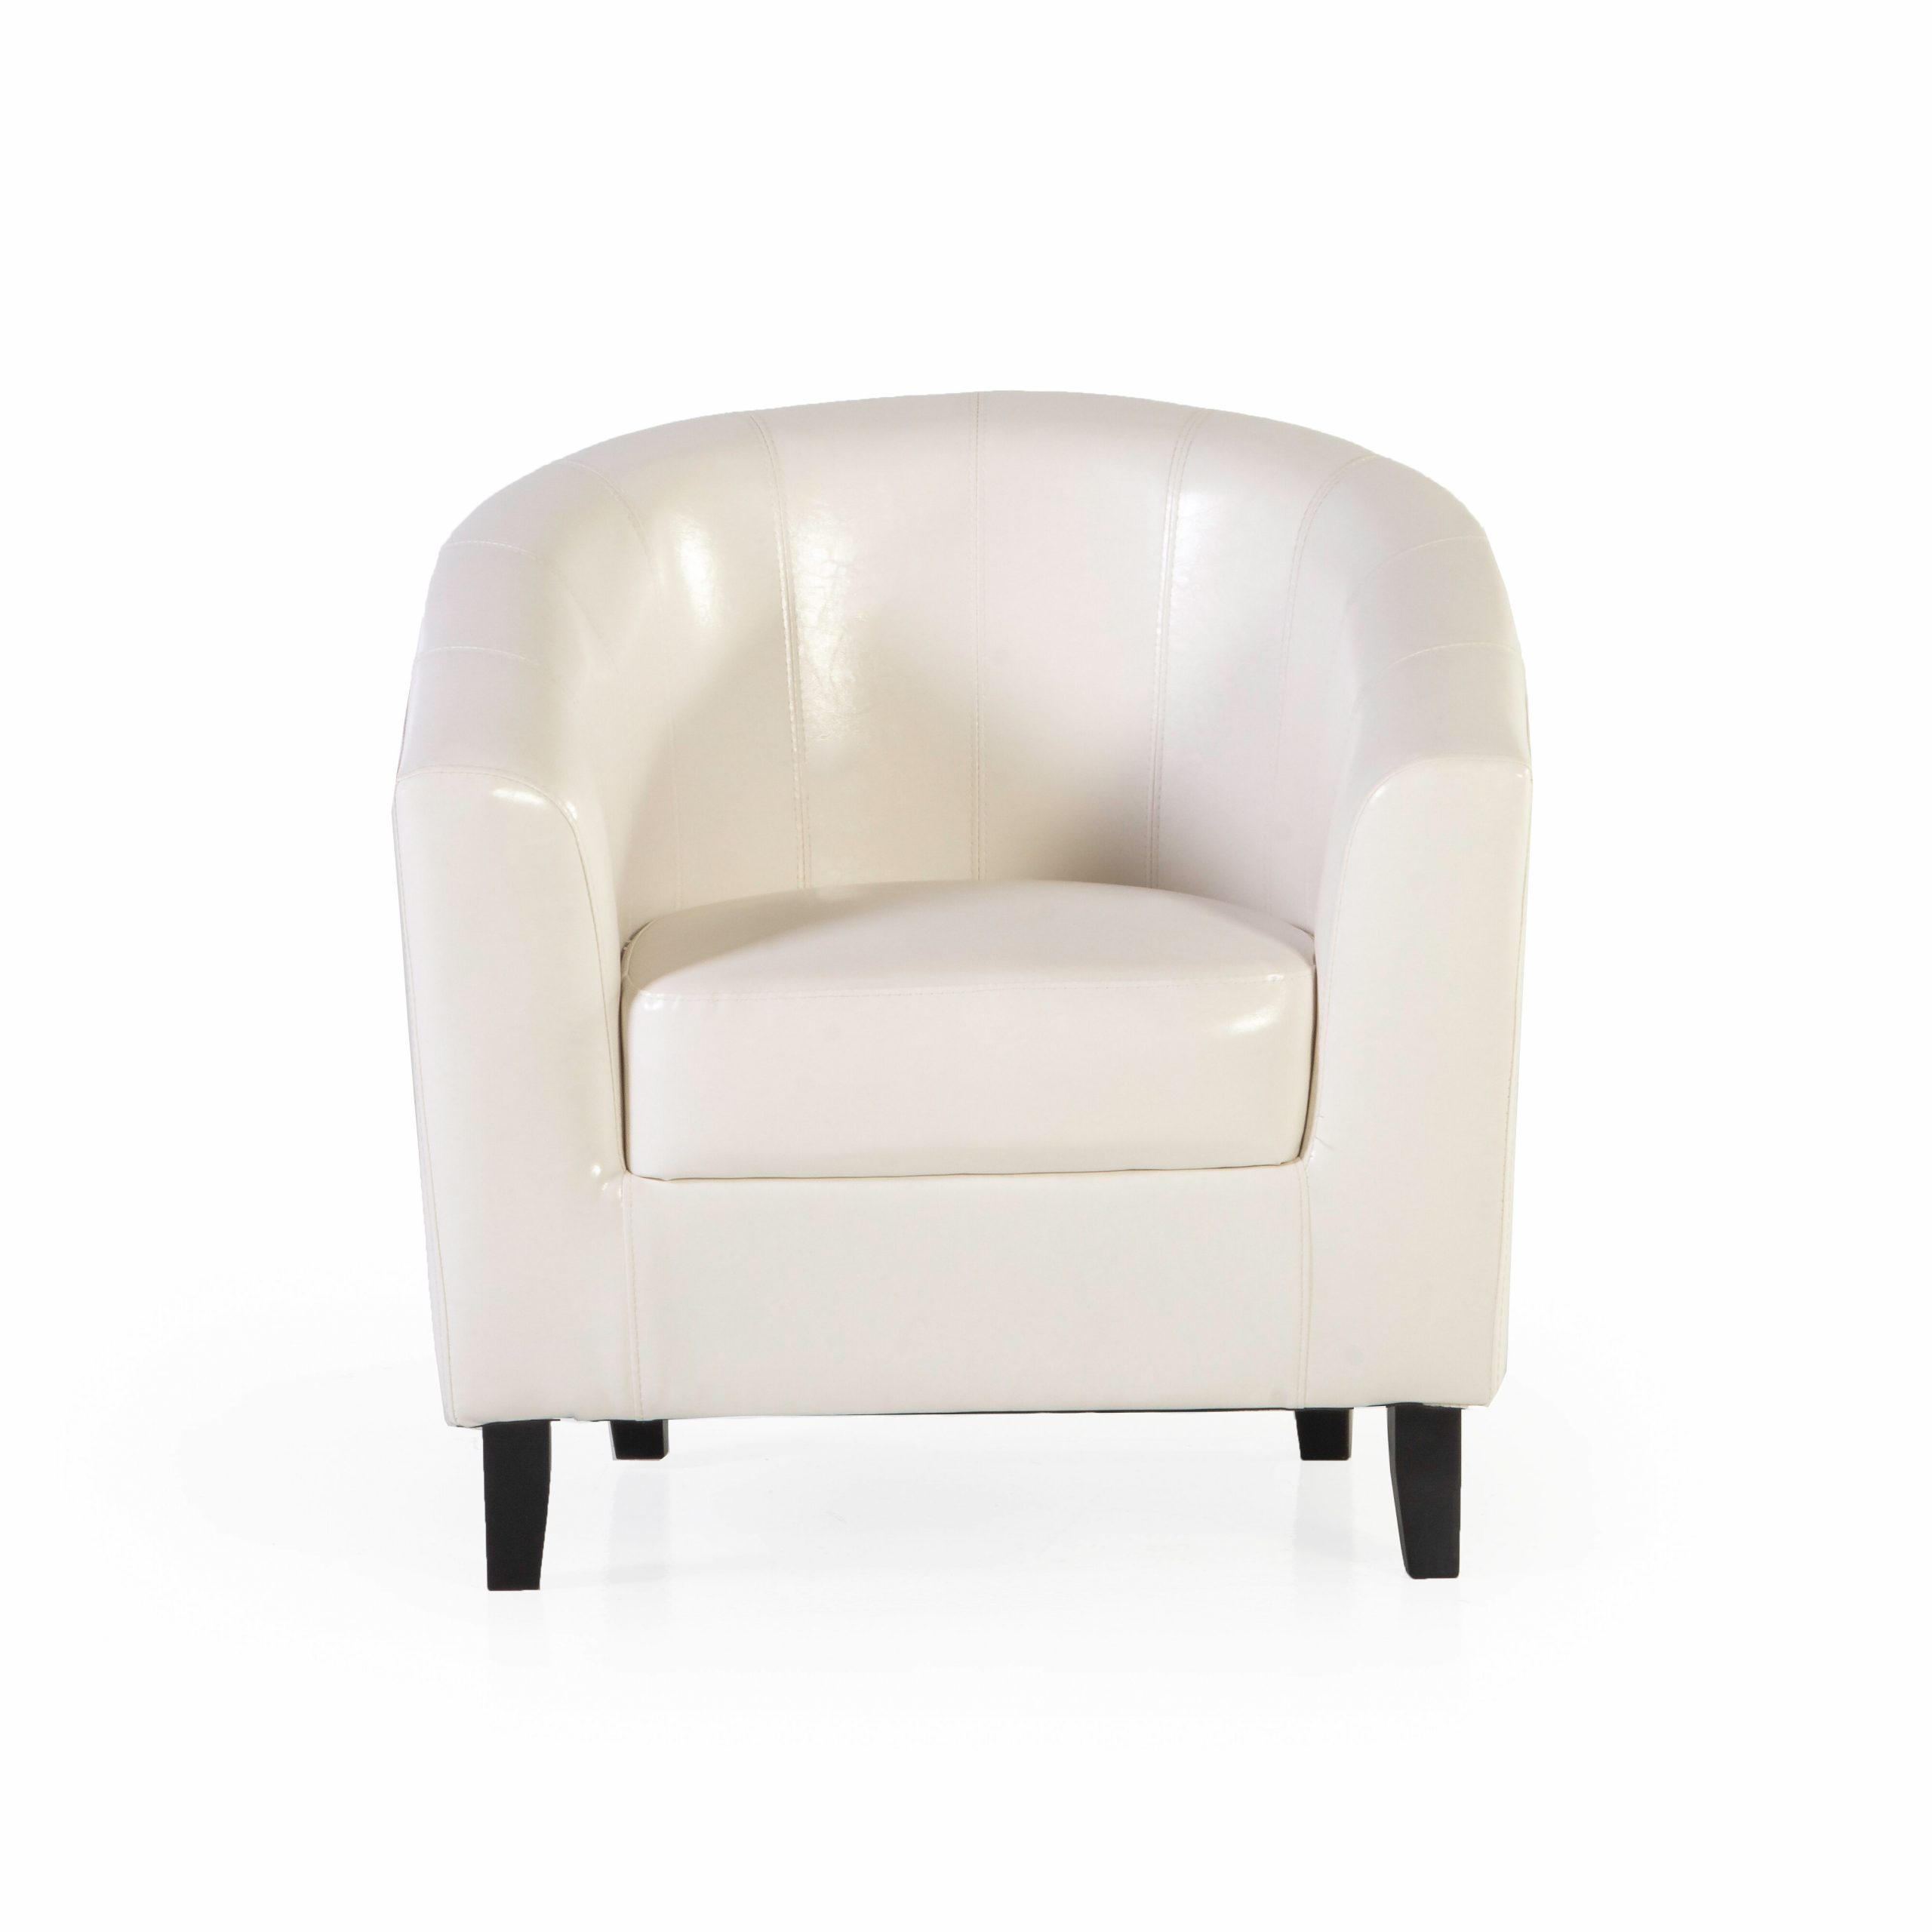 "Widely Used Angadresma 27"" W Faux Leather Barrel Chair Inside Liam Faux Leather Barrel Chairs (View 7 of 20)"